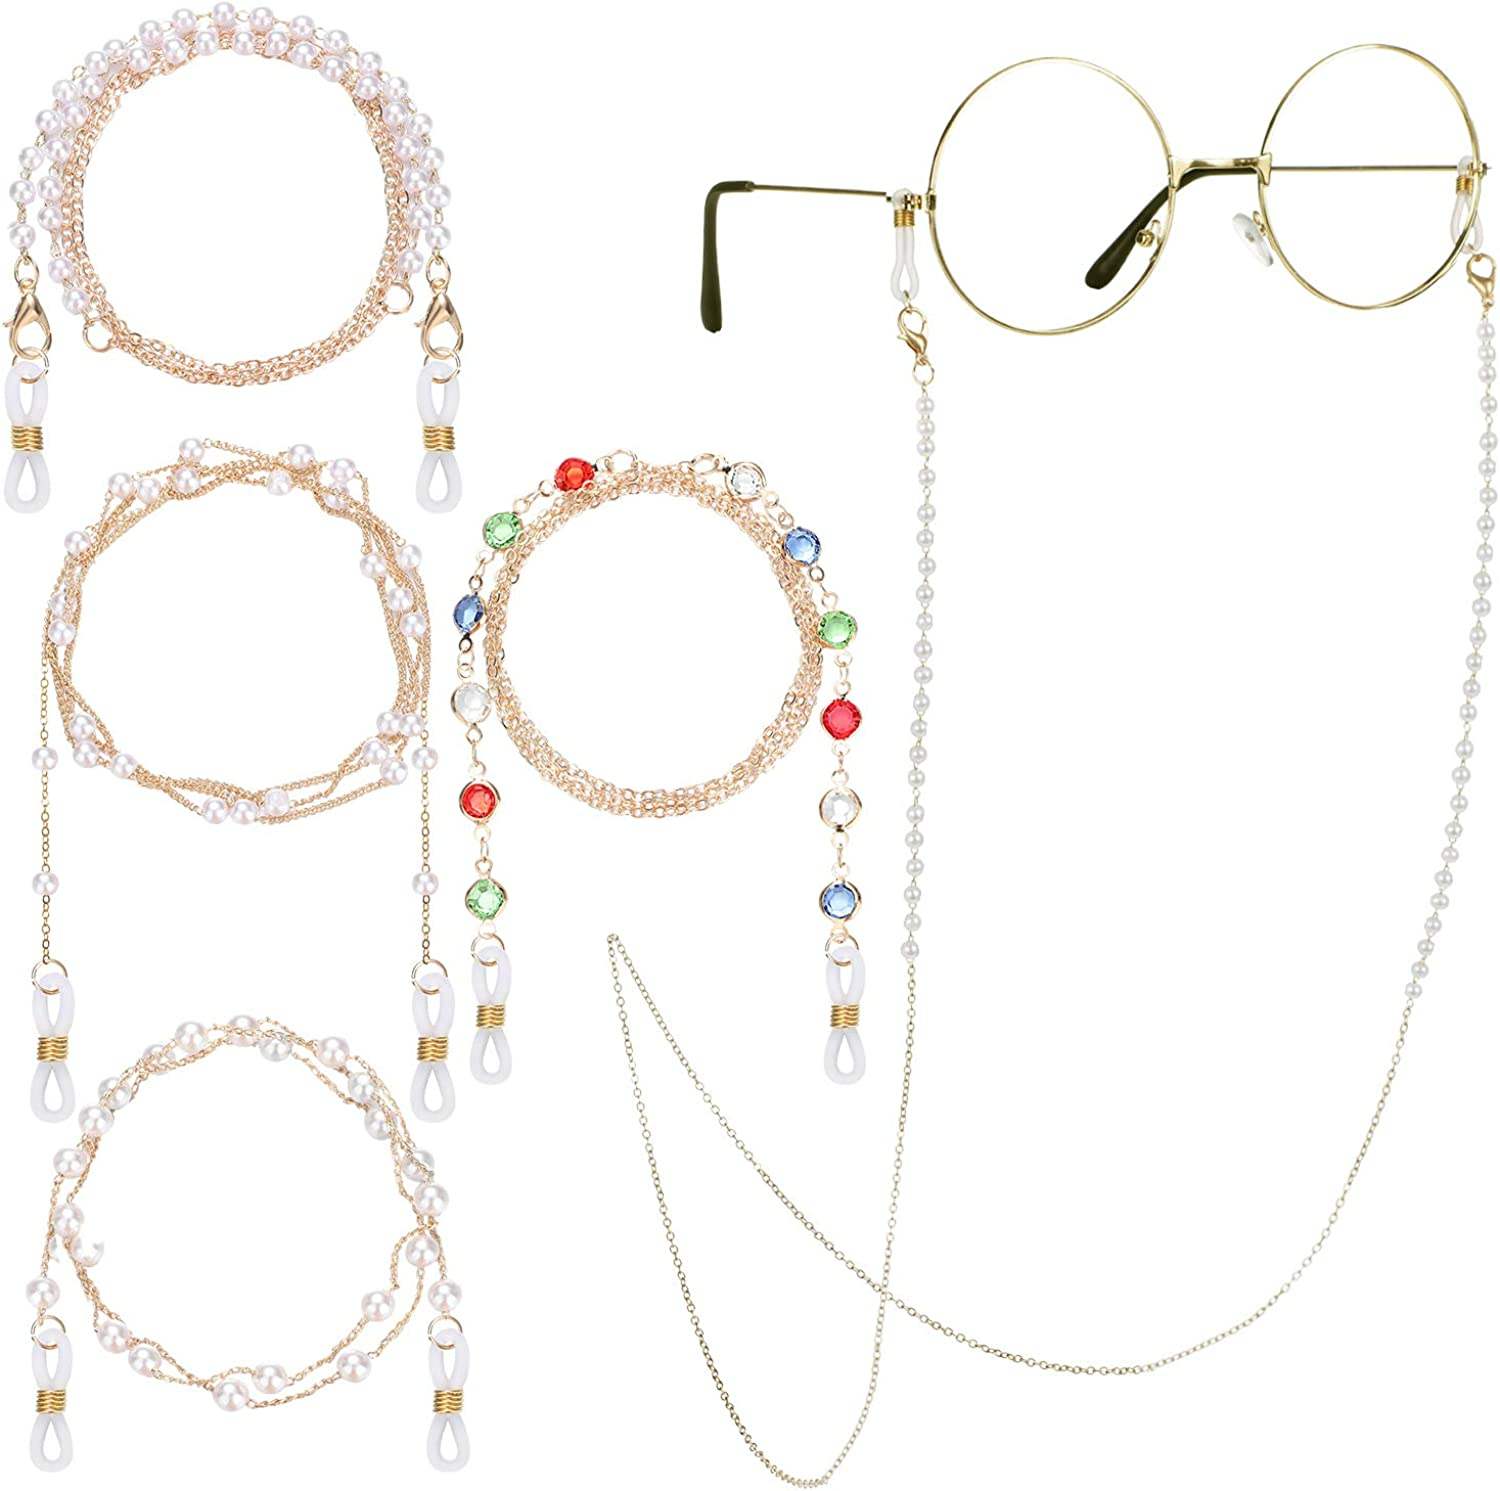 4 Pieces Eyeglass Chains Necklace Faux Pearl Beaded Eyewear Retainer Beaded Eyeglass Strap Holder Reading Eyeglass Holder for Women